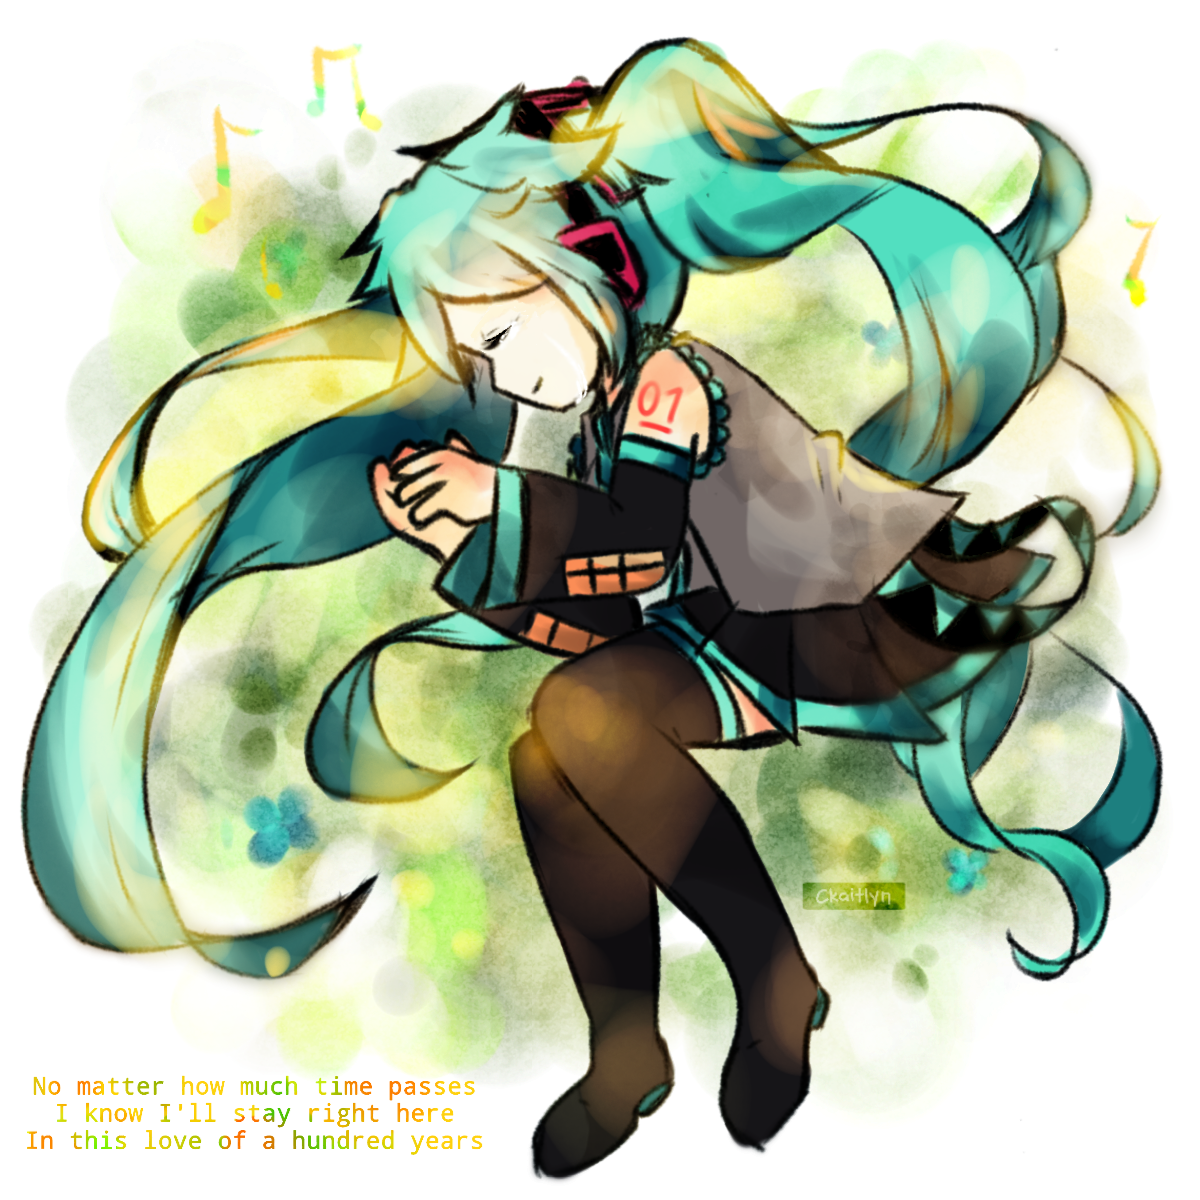 [ Hatsune Miku ] One Hundred Years of Love by CKaitlyn